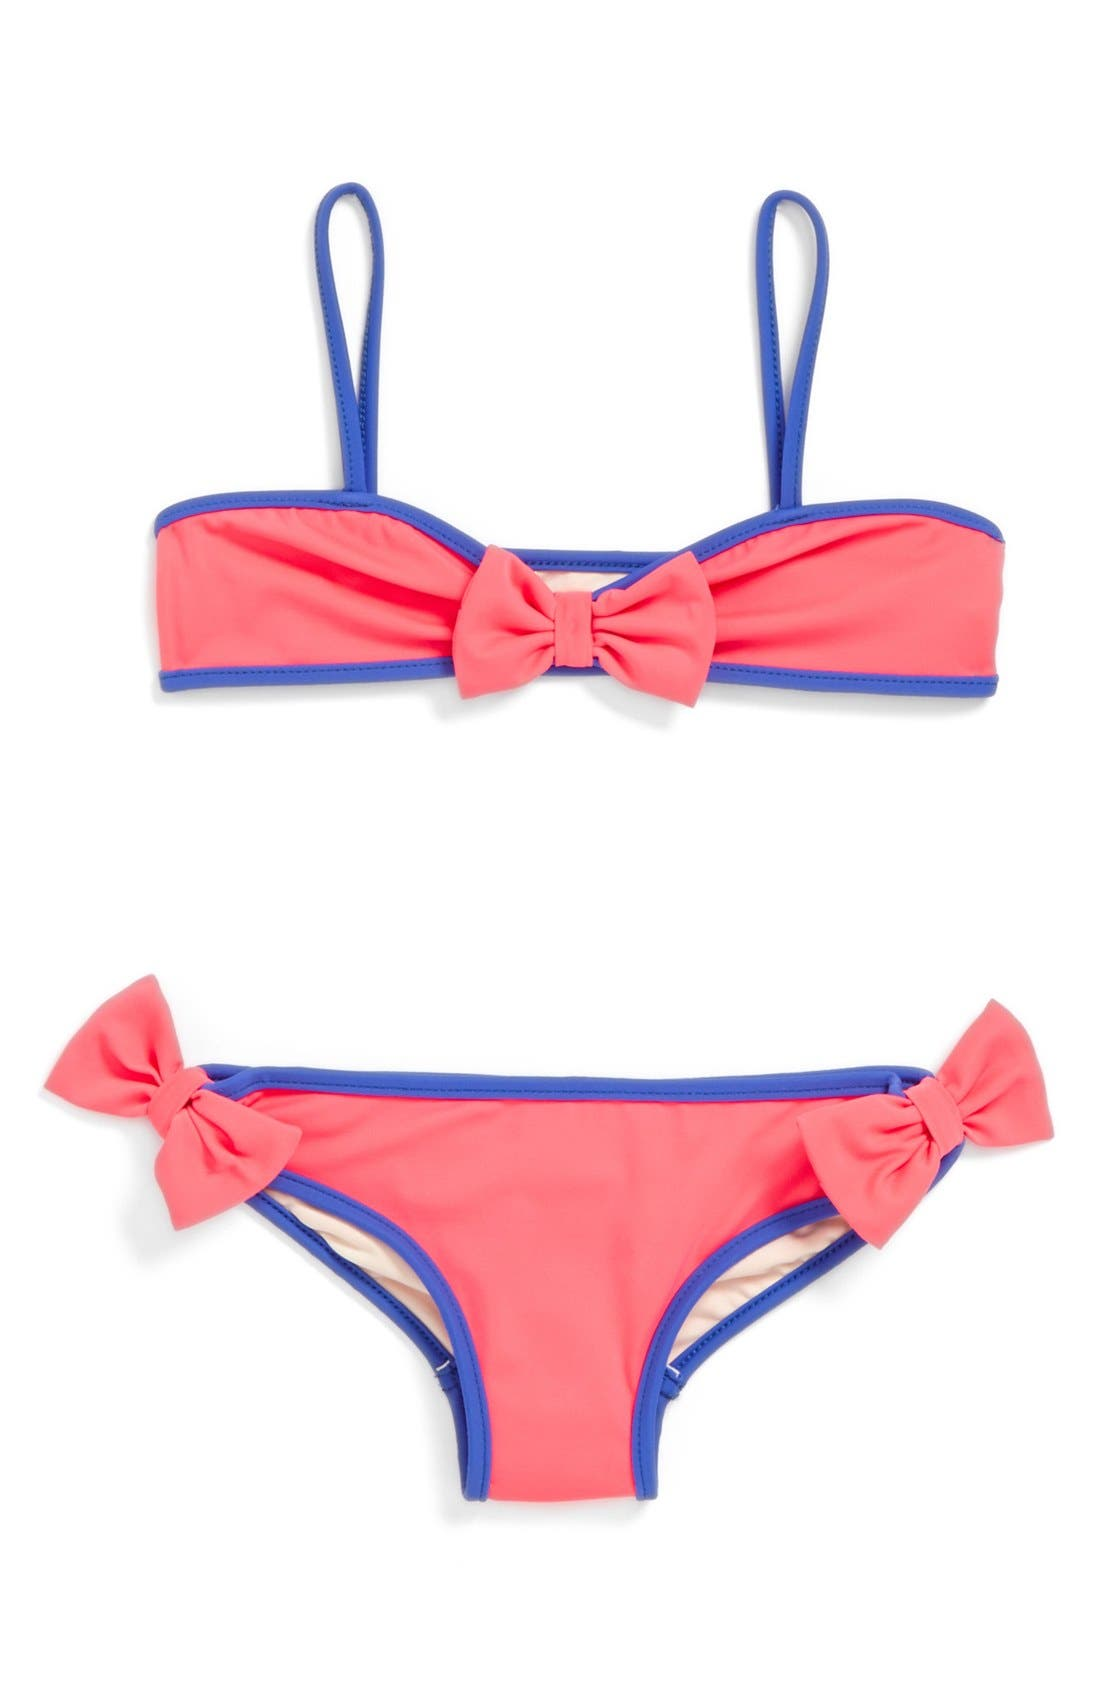 Main Image - Milly Minis 'Mini Bow' Two-Piece Swimsuit (Toddler Girls, Little Girls & Big Girls)